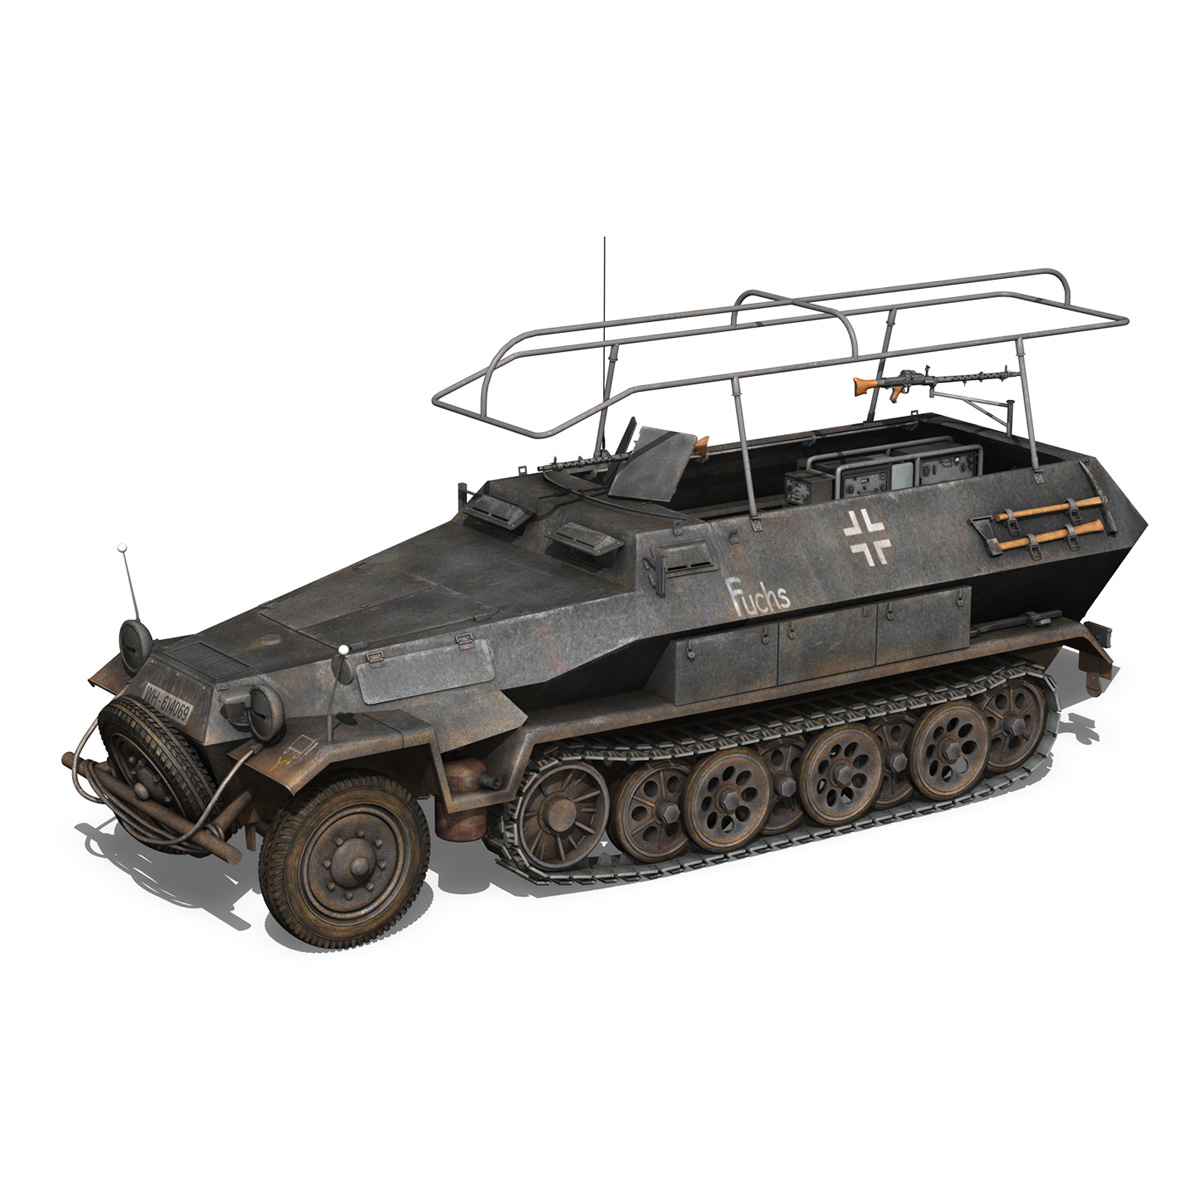 sd.kfz 251 ausf b – communications vehicle – 8pd 3d model 3ds fbx lwo lw lws obj c4d 292026